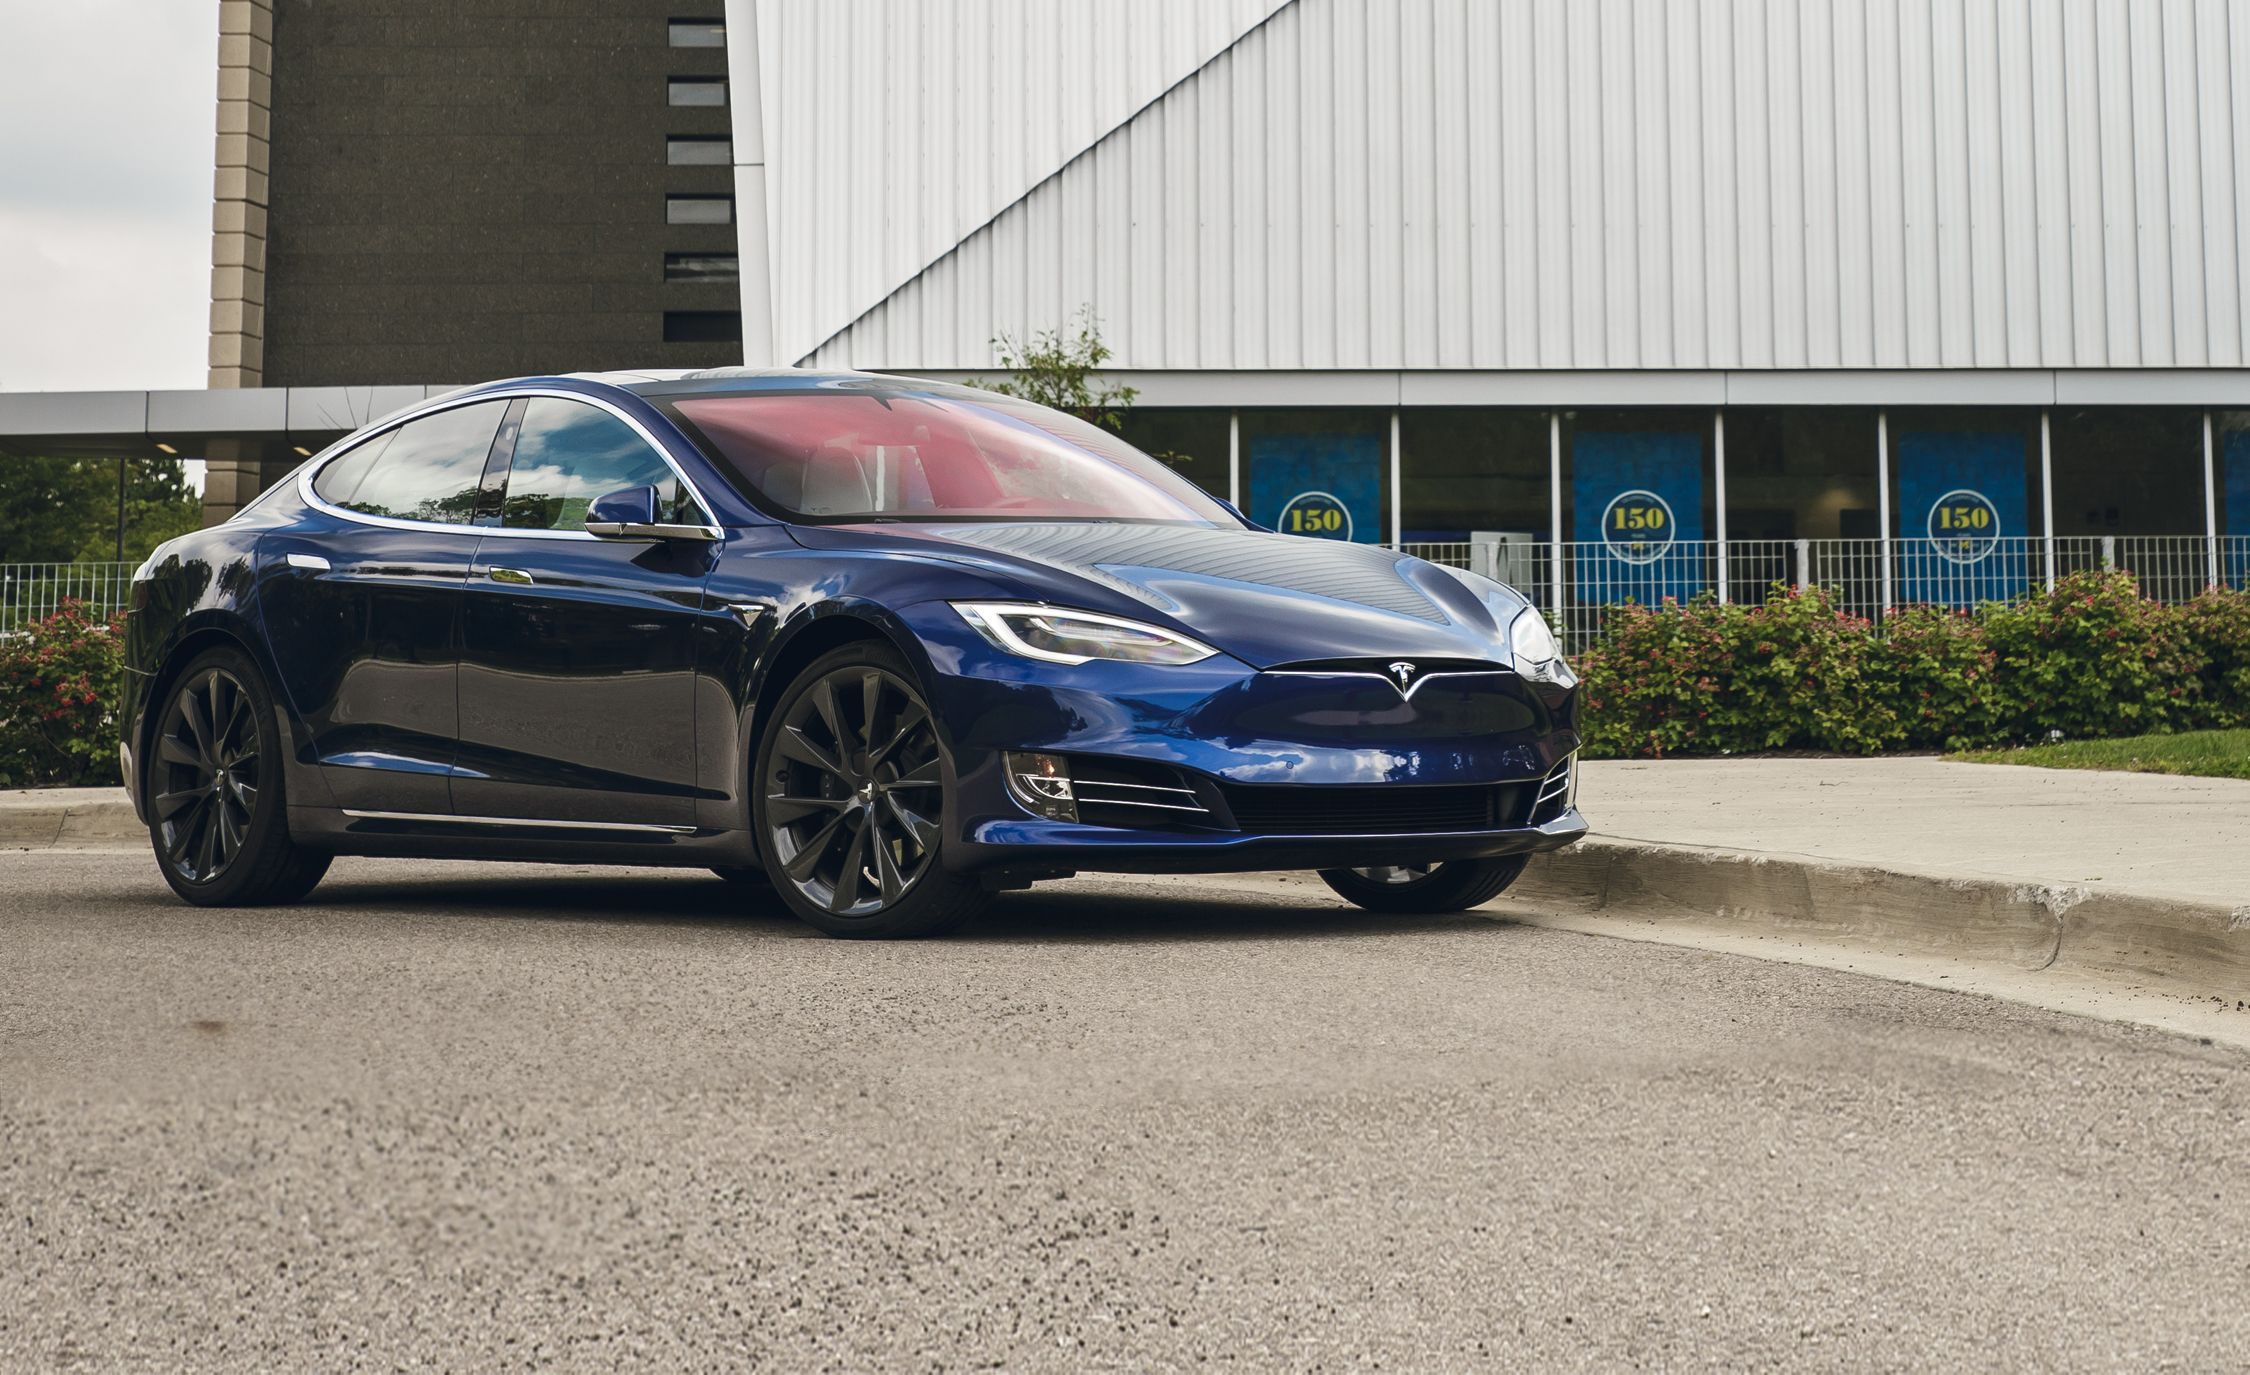 Tesla Model S 100d An Electric Car With Impressive Range